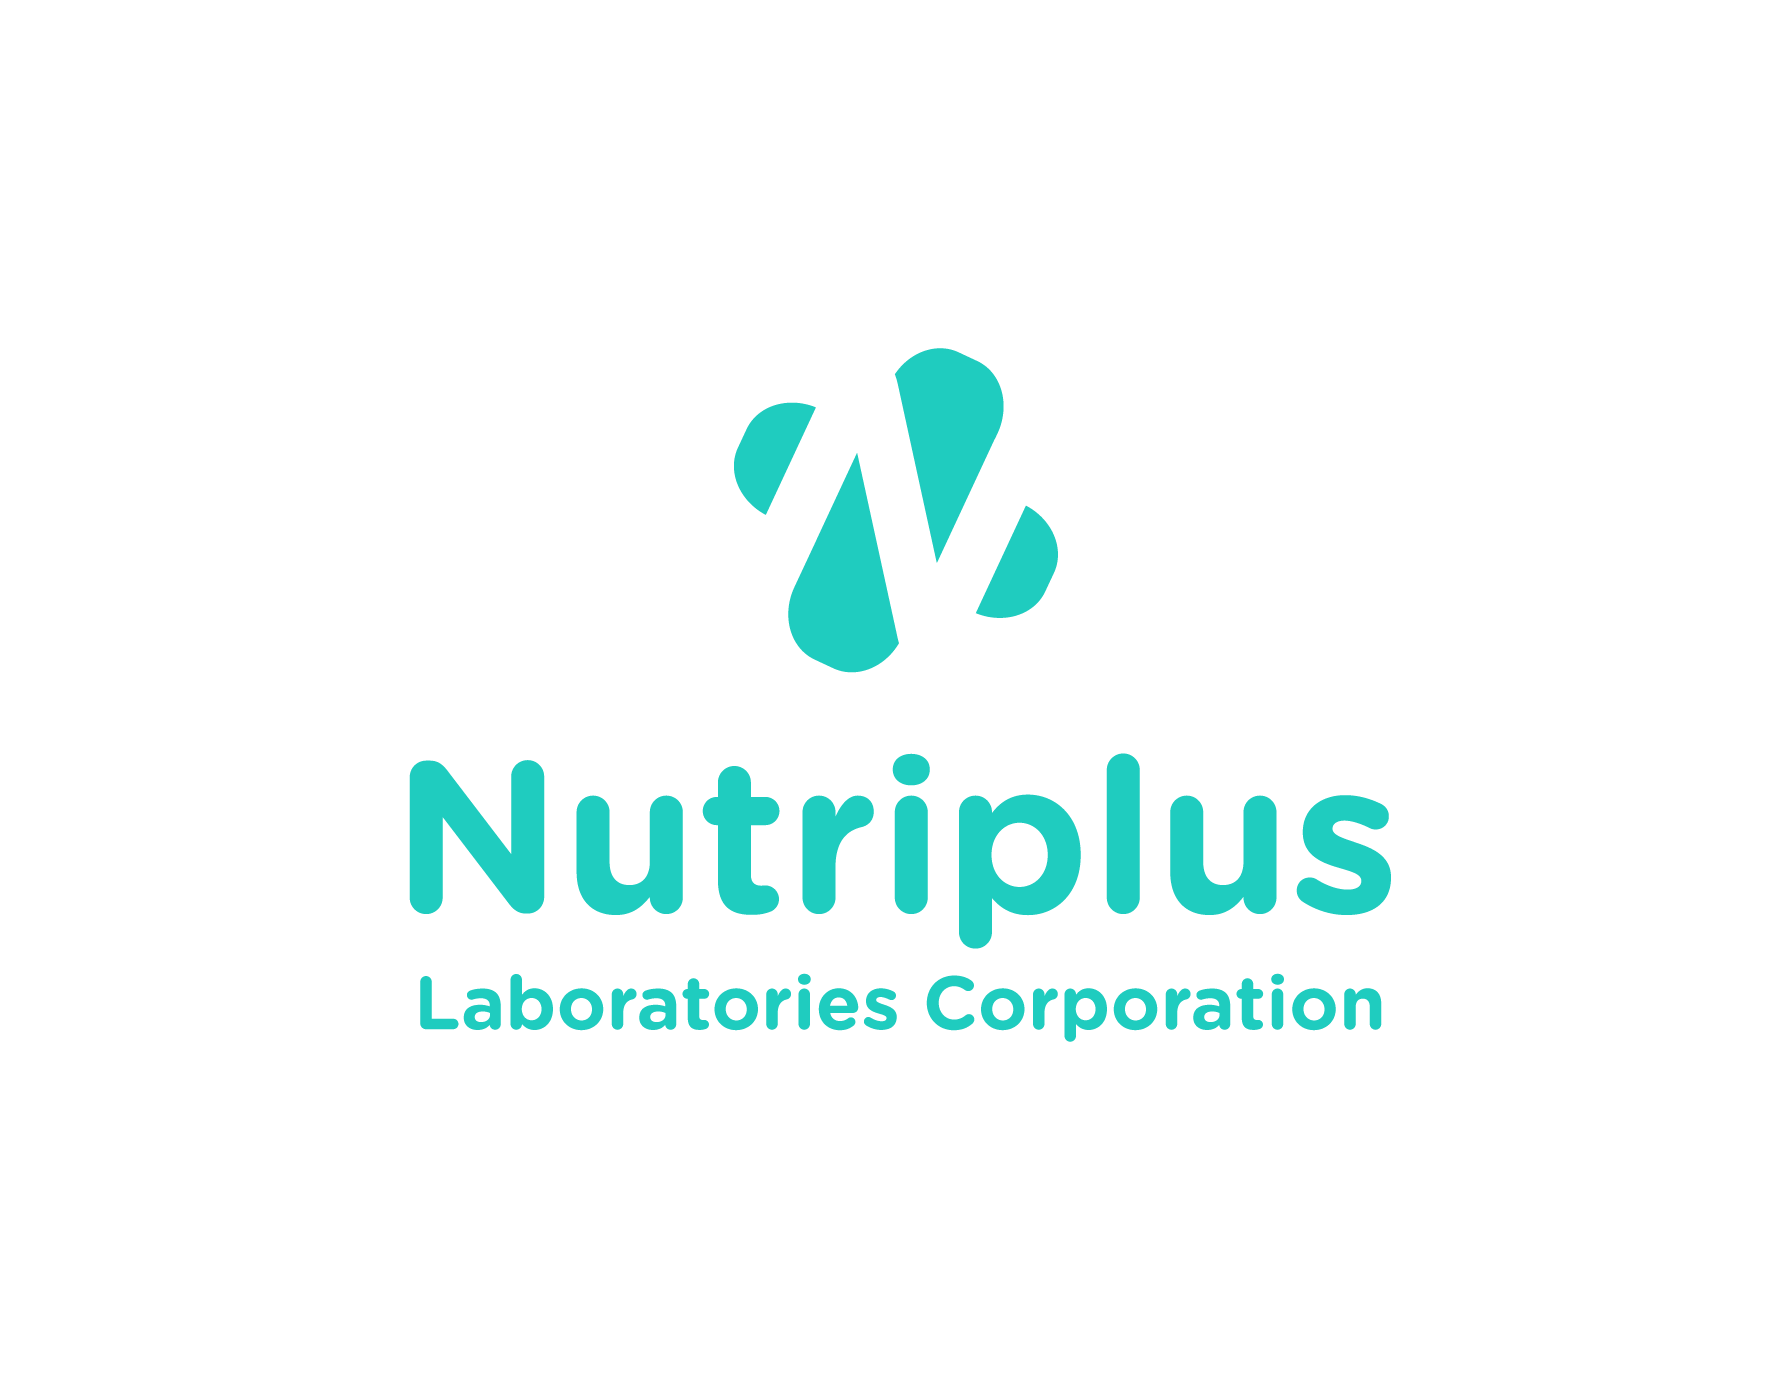 Nutriplus Laboratories Corporation